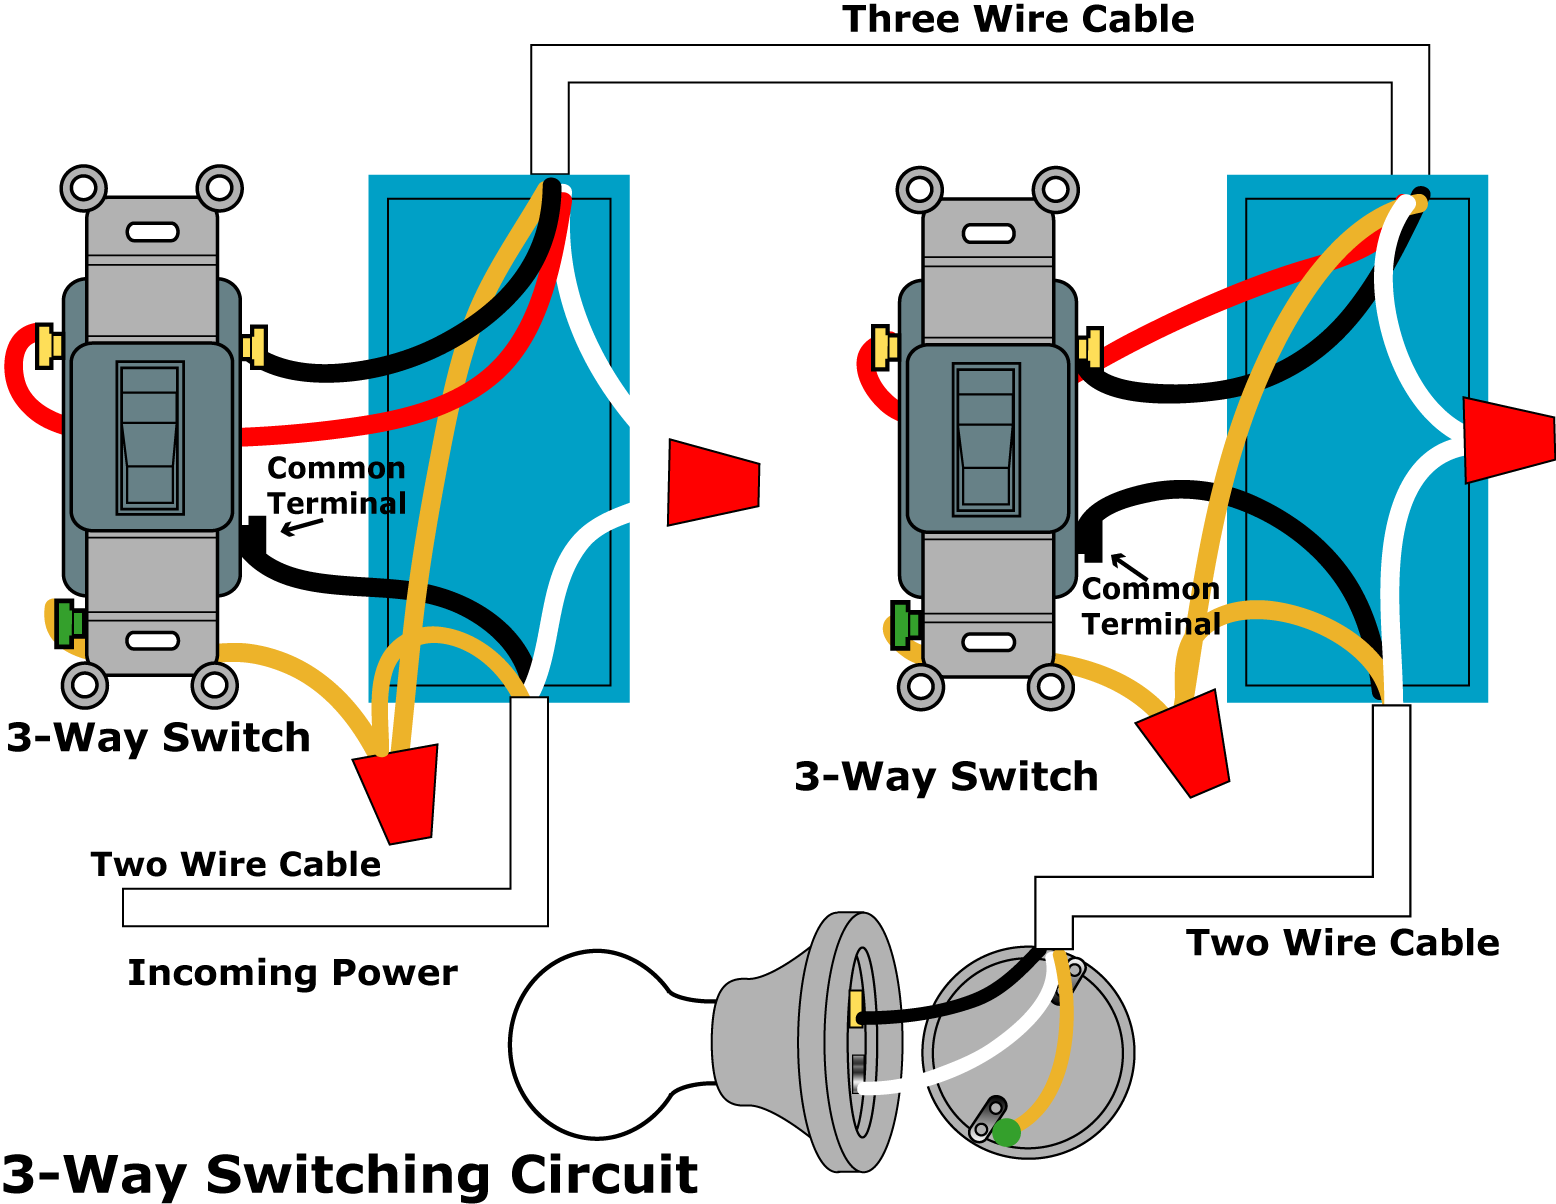 How To Wire 3 Way Switch Diagram 1982 Honda Goldwing Wiring Home Info Source Problems With Your Light